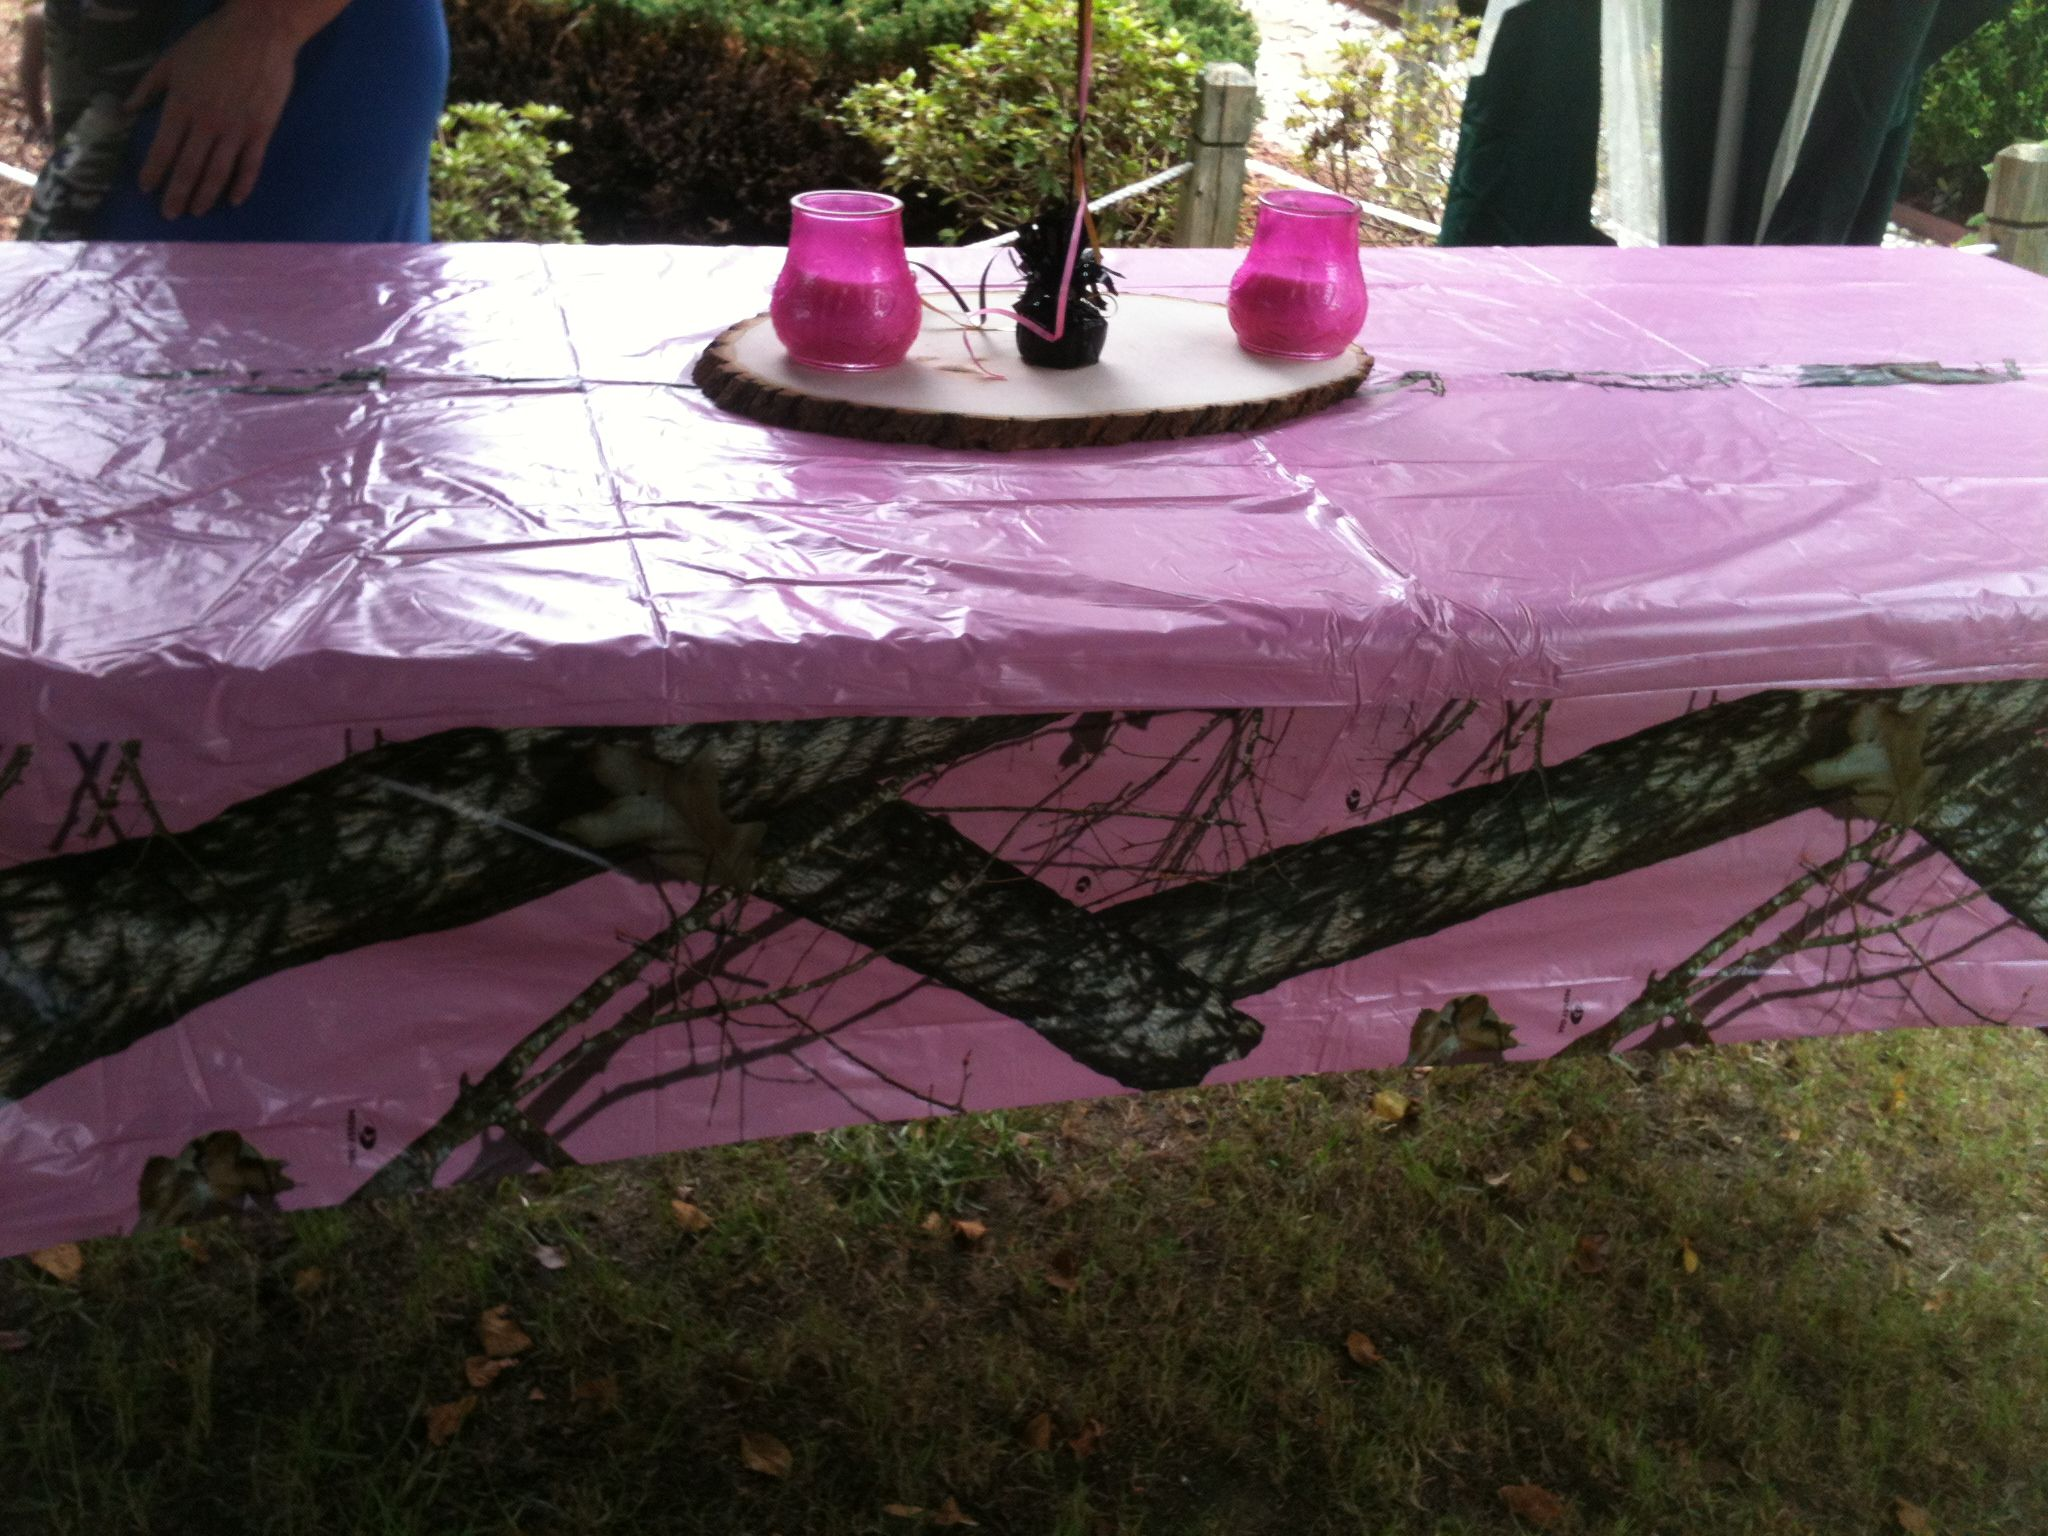 Pink Camo Table Cloth With Tree Slices As Centerpiece